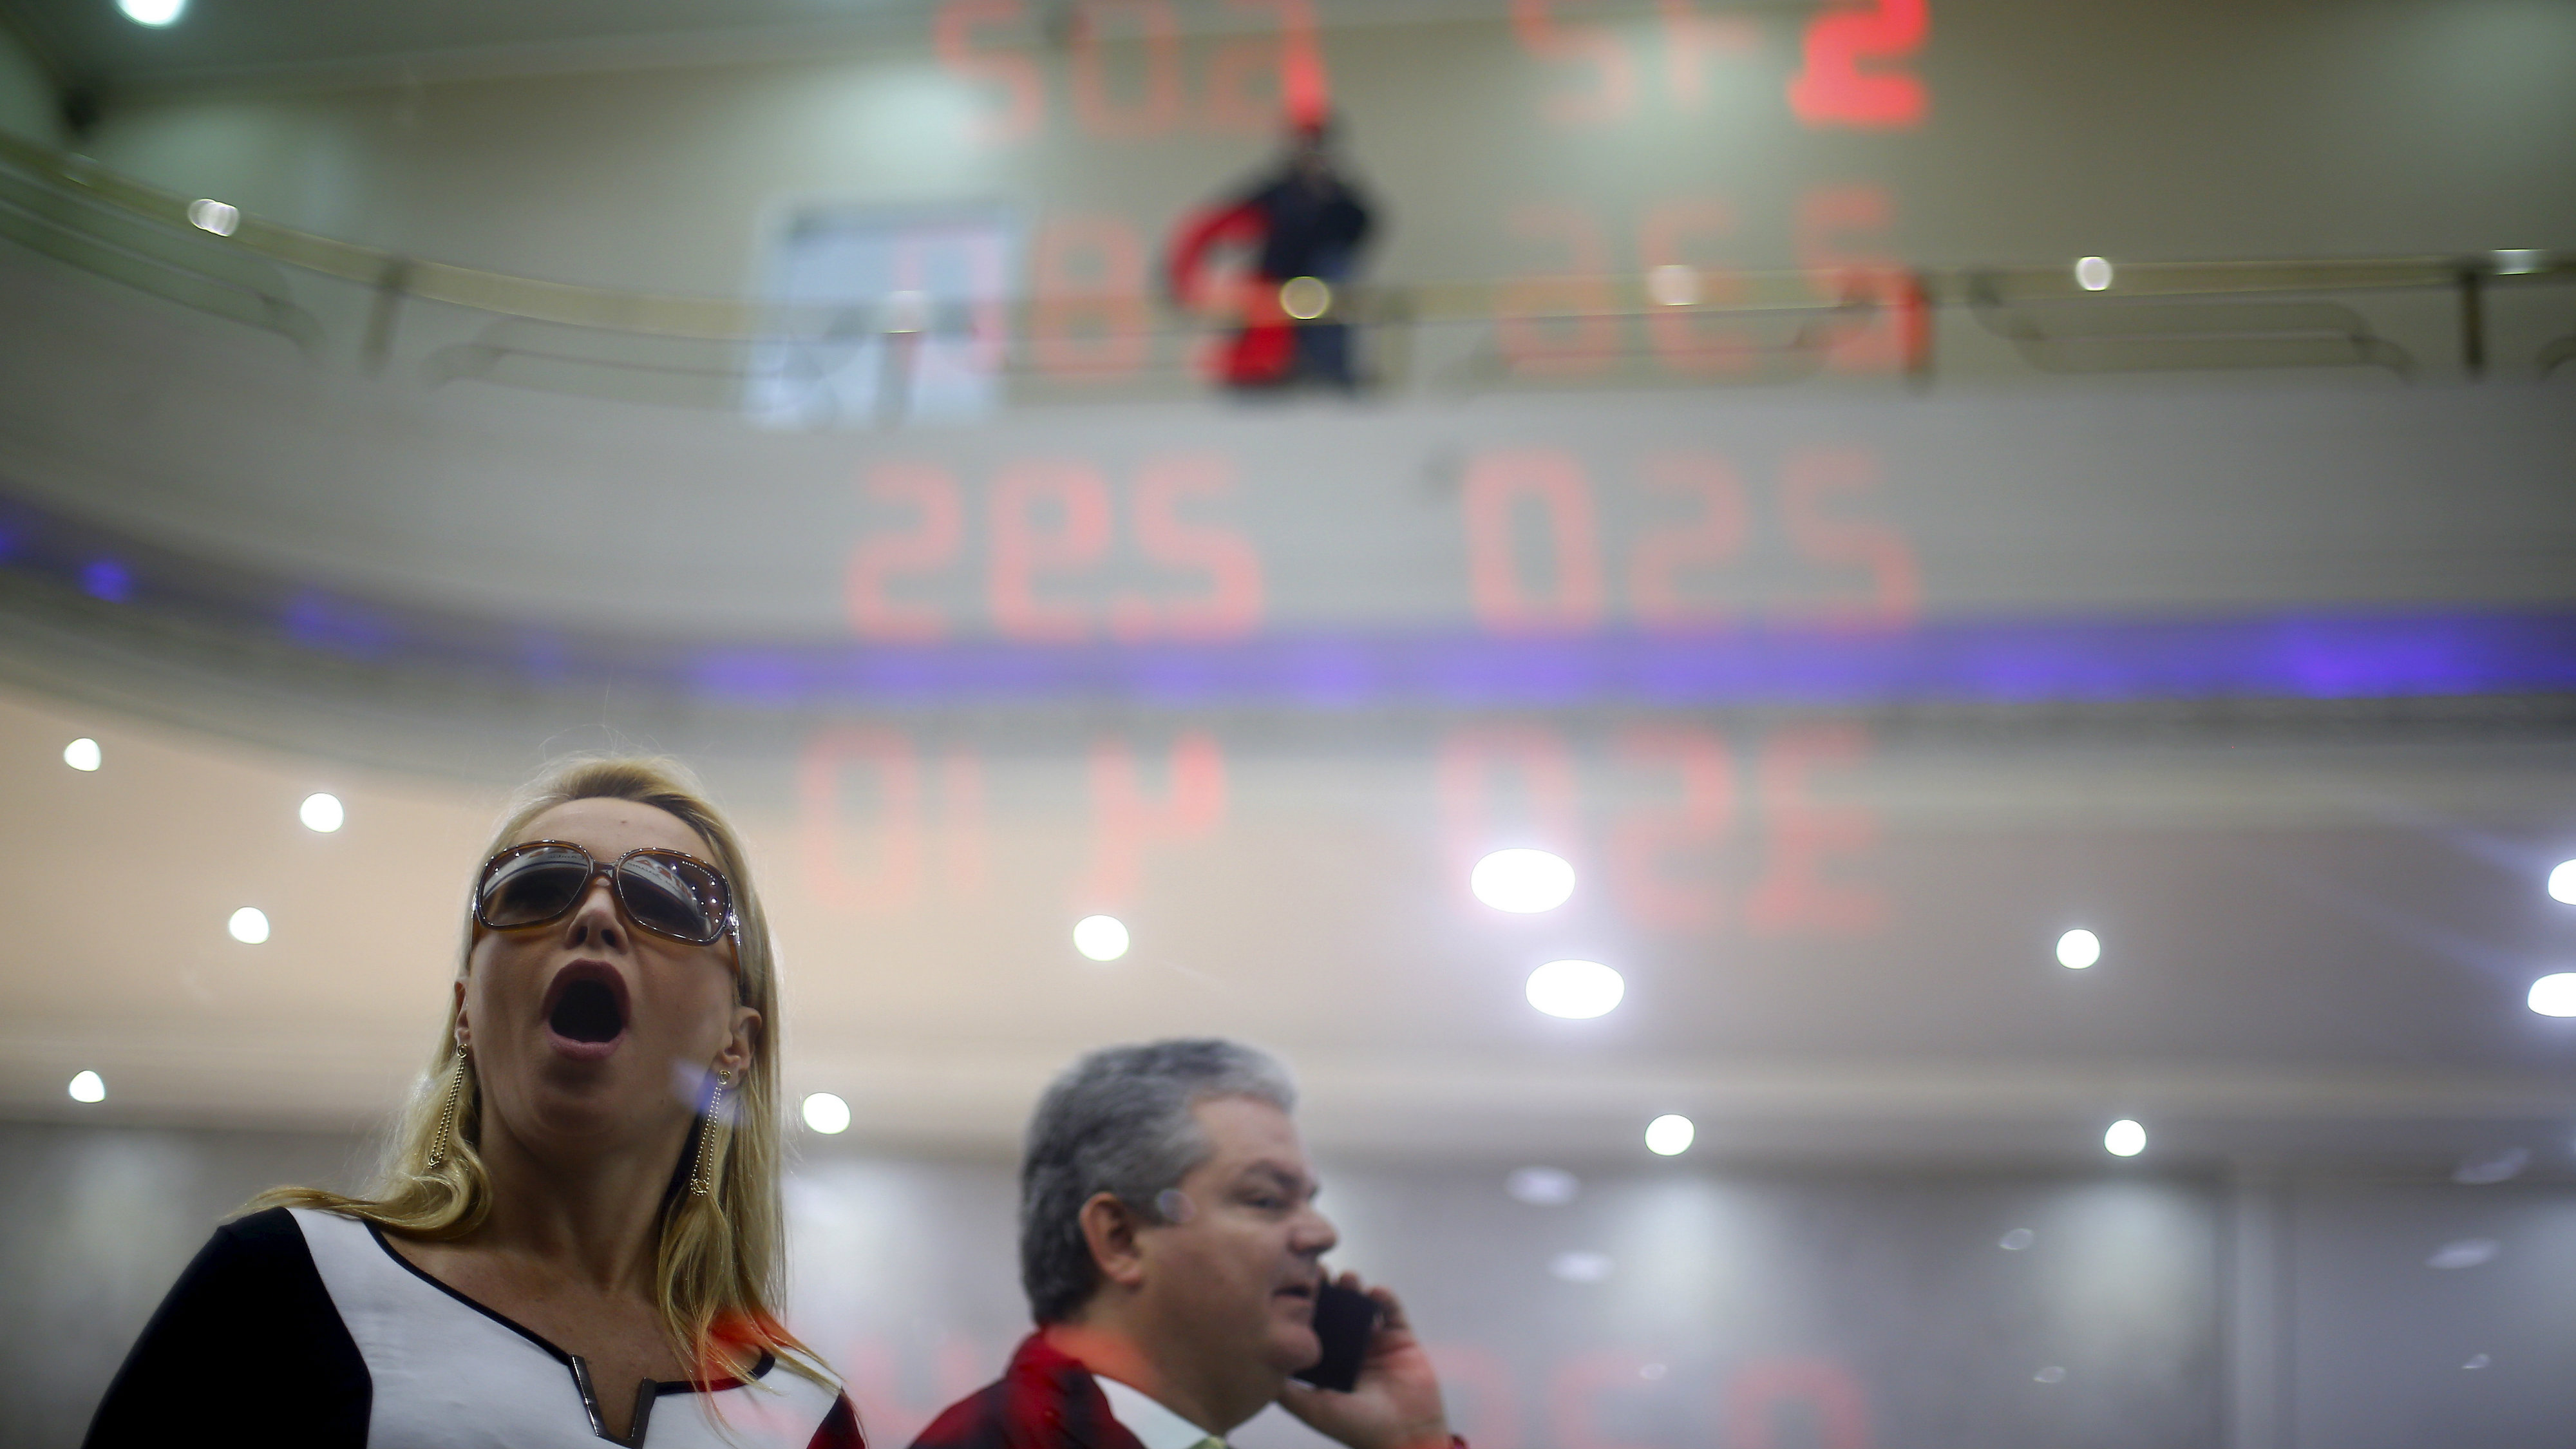 A woman reacts as she reads a board showing the Real-U.S. dollar and several foreign currencies exchange rates in Rio de Janeiro, Brazil, August 26, 2015. While many of Brazil's largest companies have grown savvy about hedging their debt against big currency swings, an increasing number could feel the heat from the real's plunge to a more than 12-year low due to poor planning and rising debt, bankers said. Debt refinancing and hedging costs are rapidly rising as Brazil's economy falls into recession and local banks pare back credit. The real, the world's worst-performing major currency this year, according to Thomson Reuters calculations, slipped below 3.65 to the dollar on Wednesday.